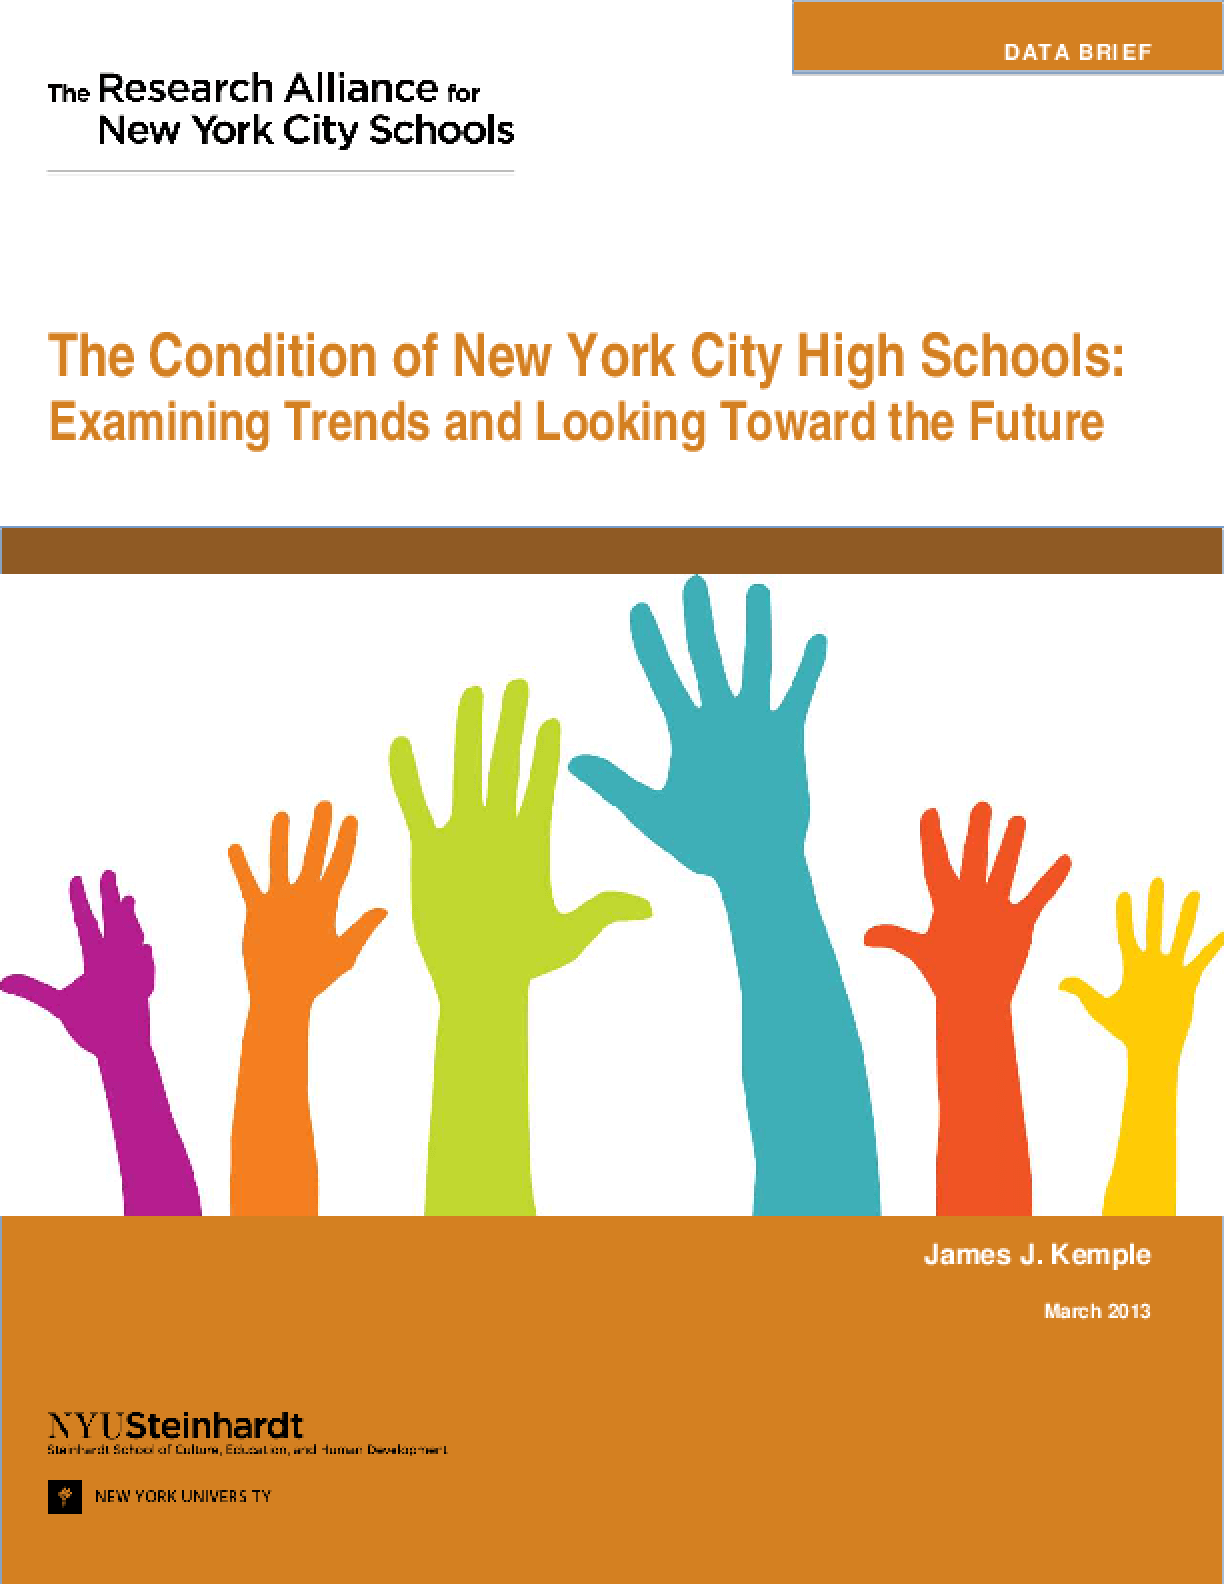 The Condition of New York City HIgh Schools: Examining Trends and Looking Toward the Future